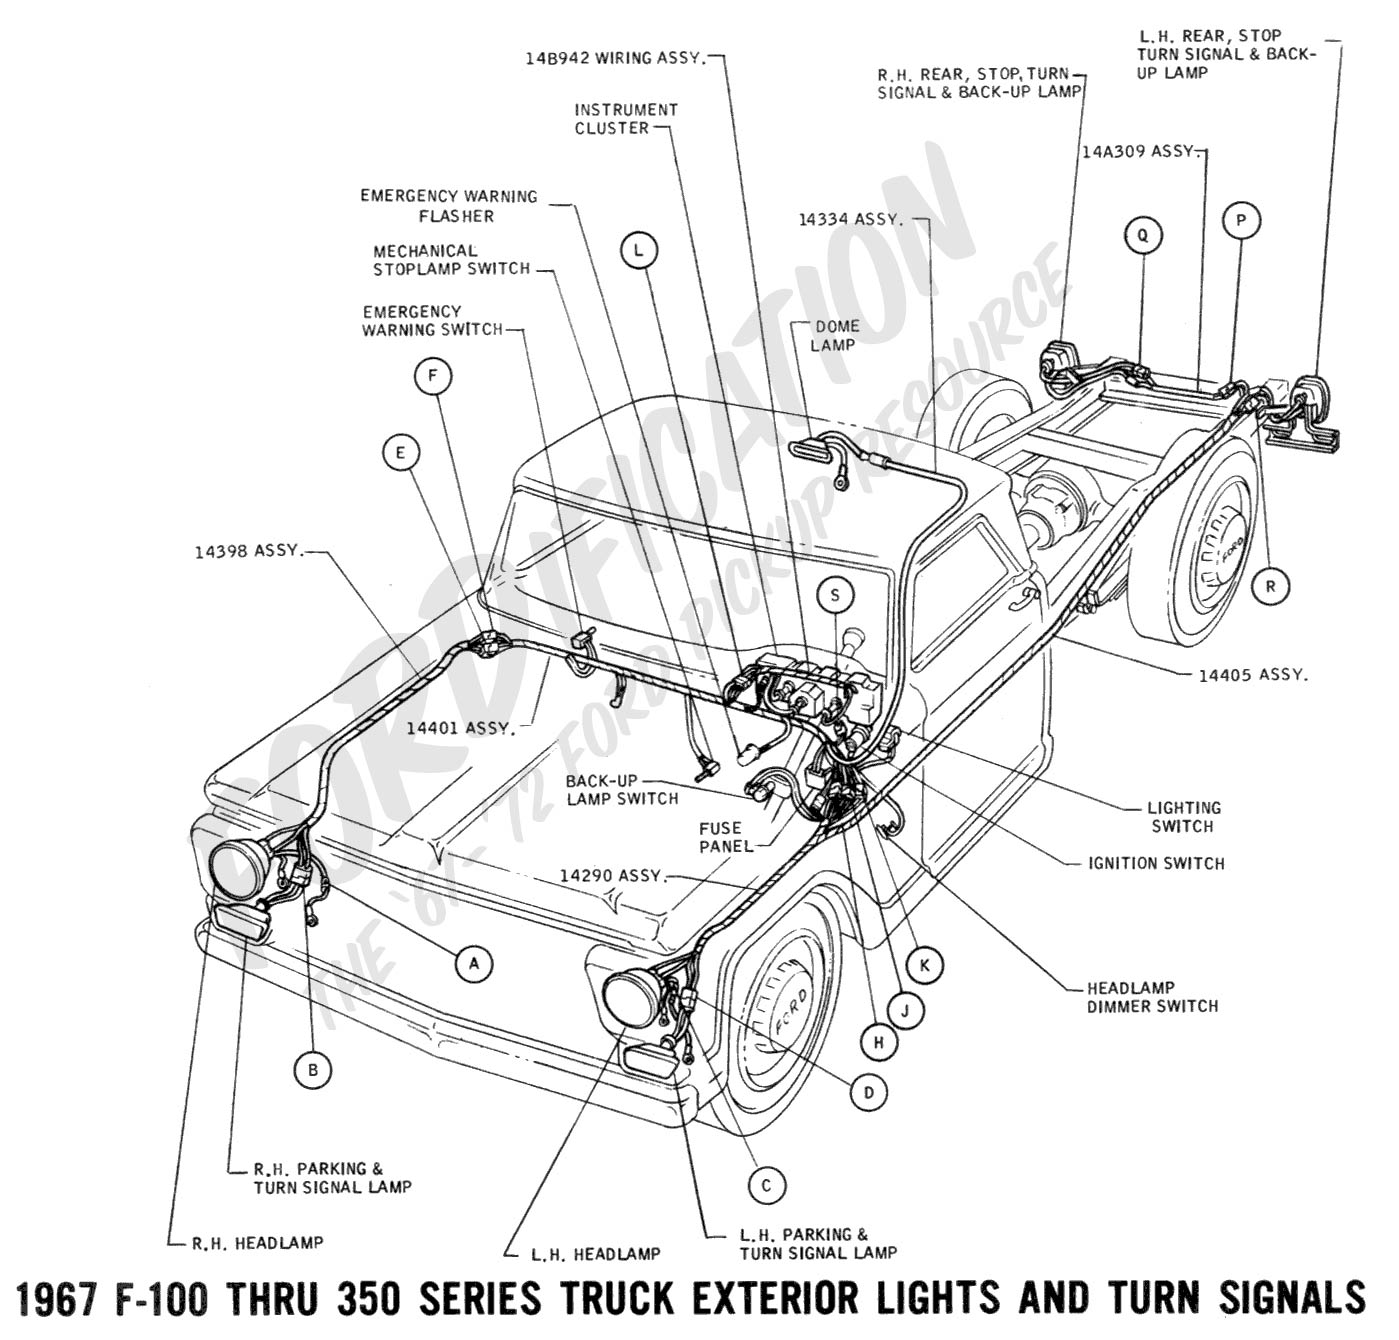 Ford Truck Technical Drawings And Schematics Section H Wiring External Fuse Box 1967 F 100 Thru 350 Exterior Lights Turn Signals 01